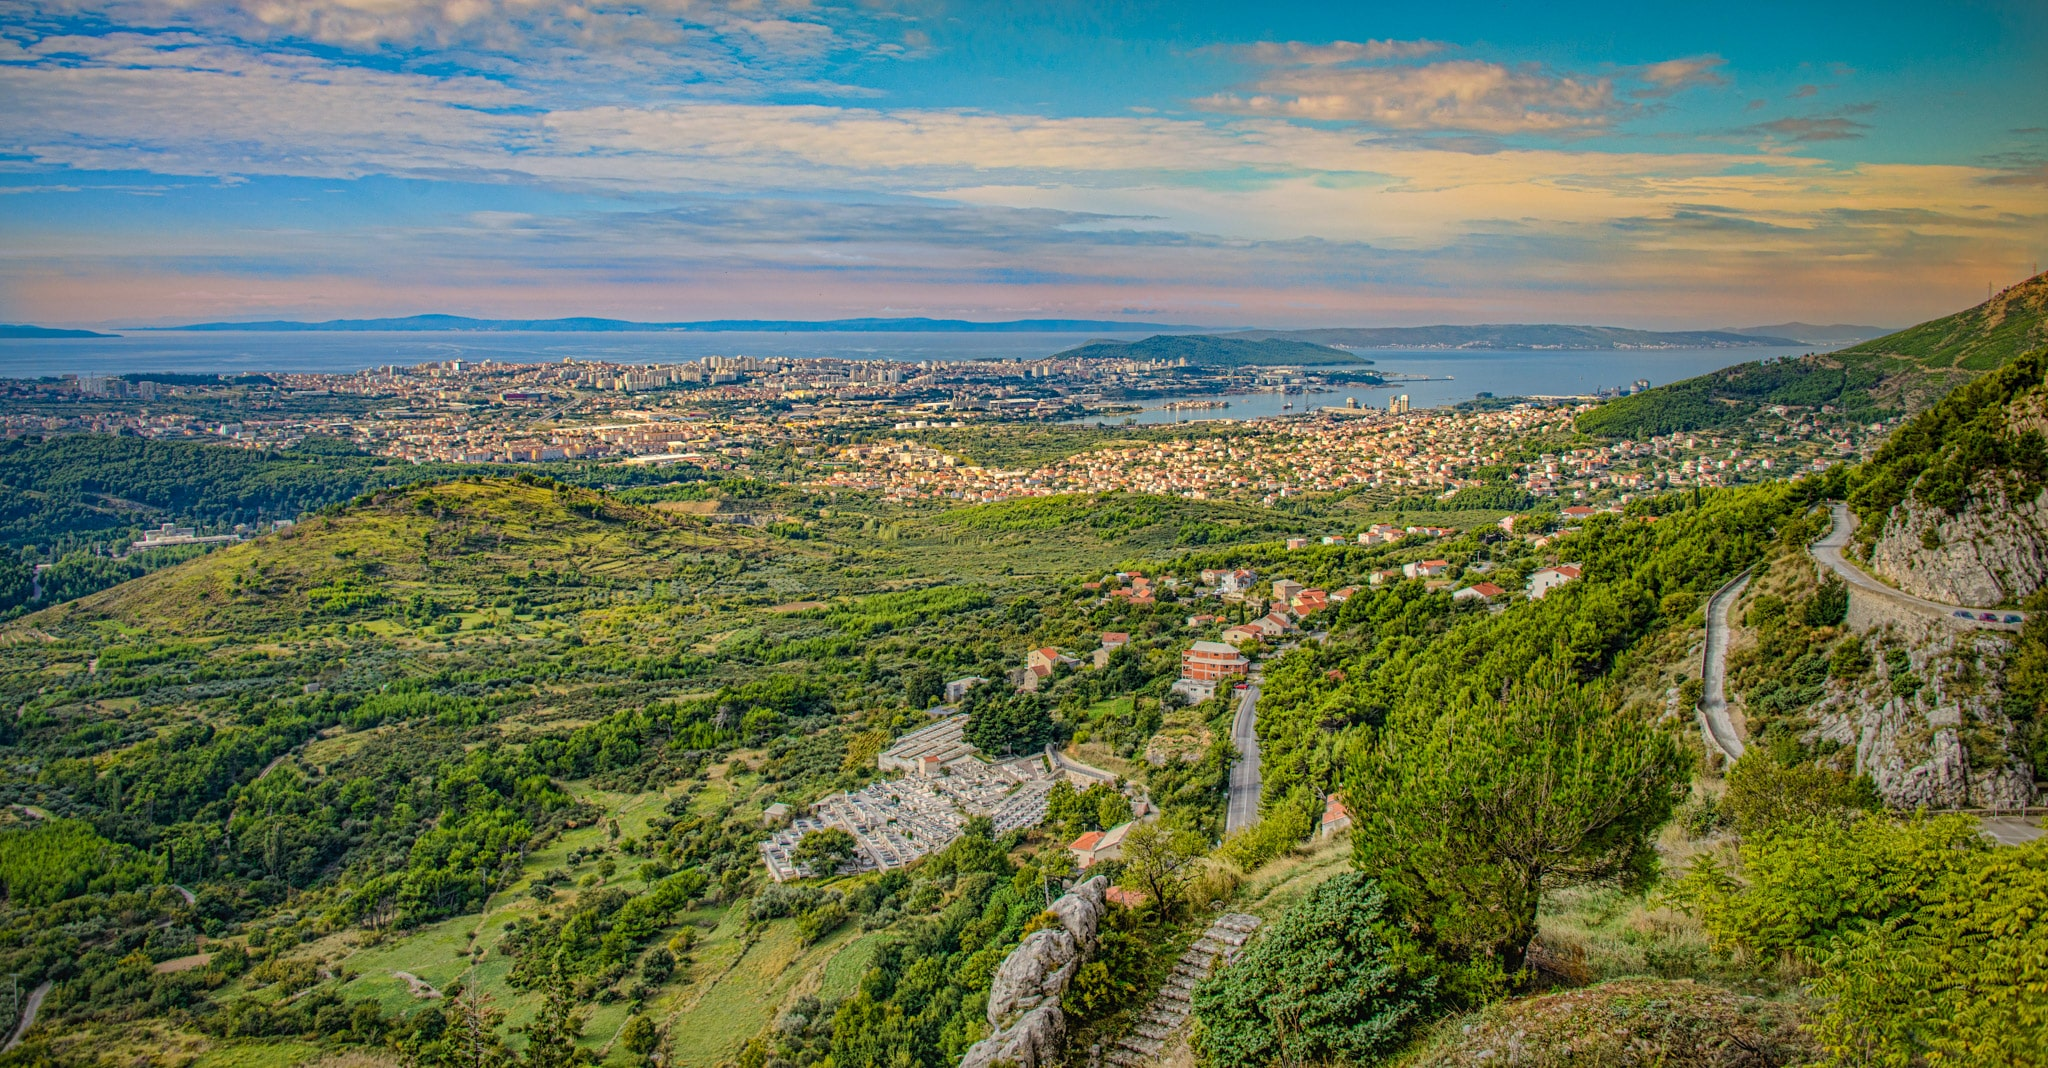 A view of the Croatian city of Split on the Adriatic from high atop Klis Fortress.